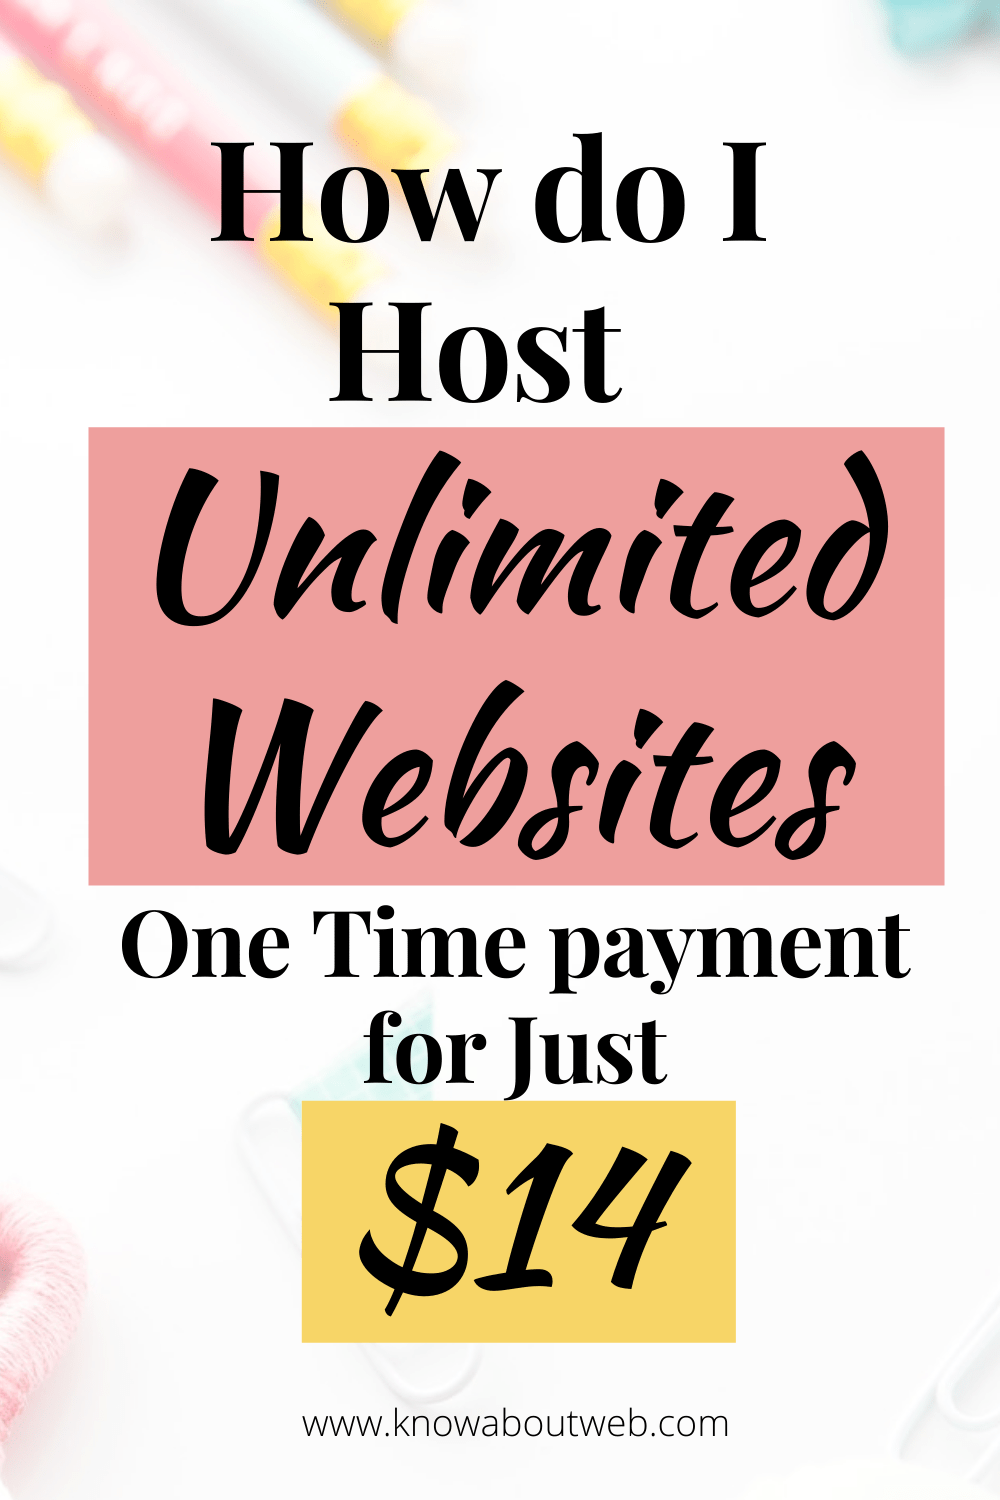 Infinite Hosting Review – Unlimited Hosting One Time Payment $17